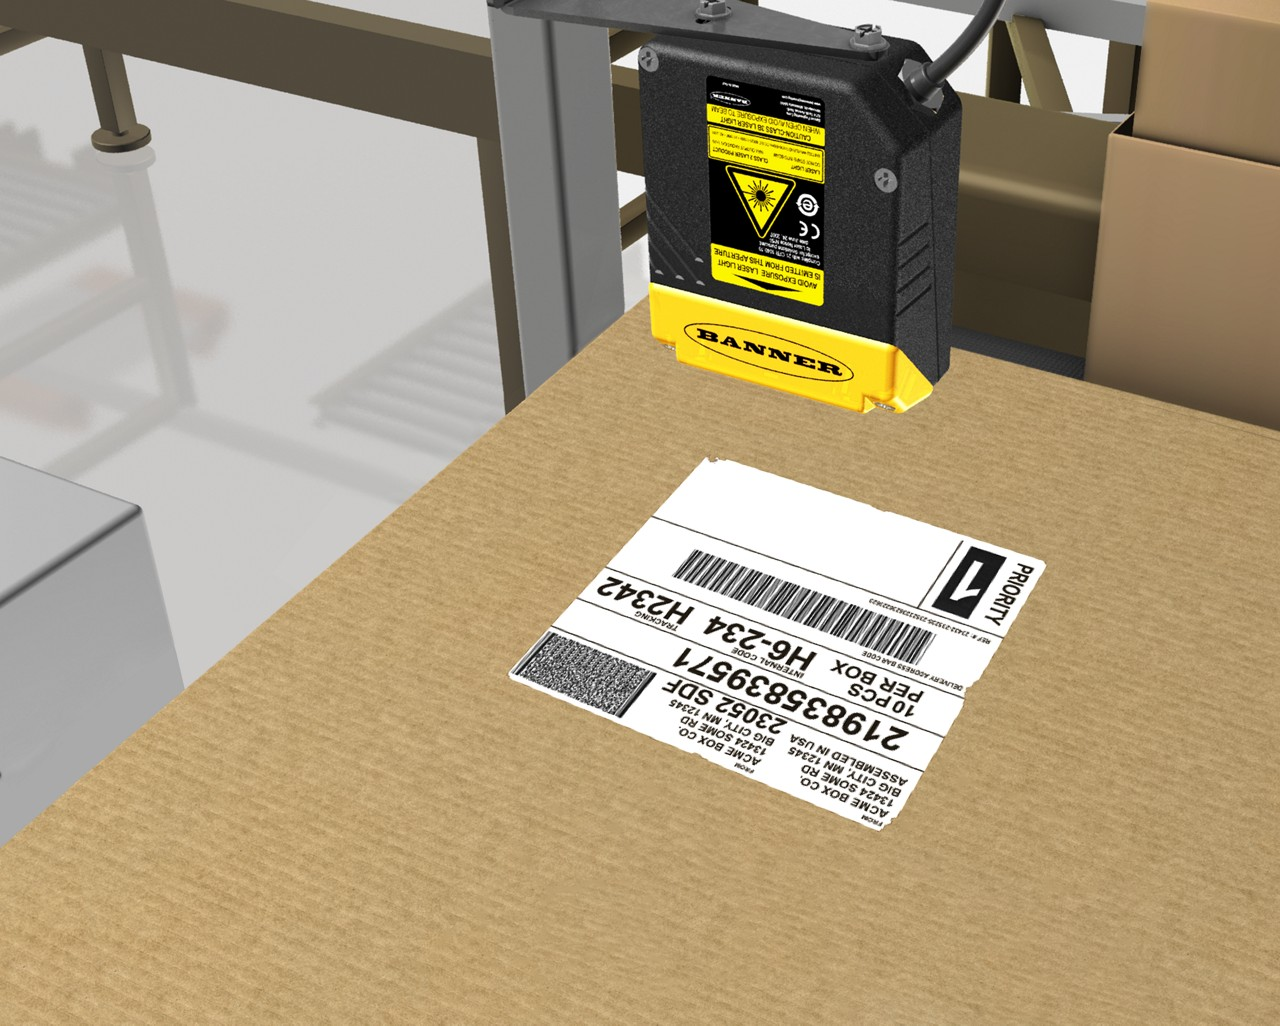 barcode reader scans a code on a box